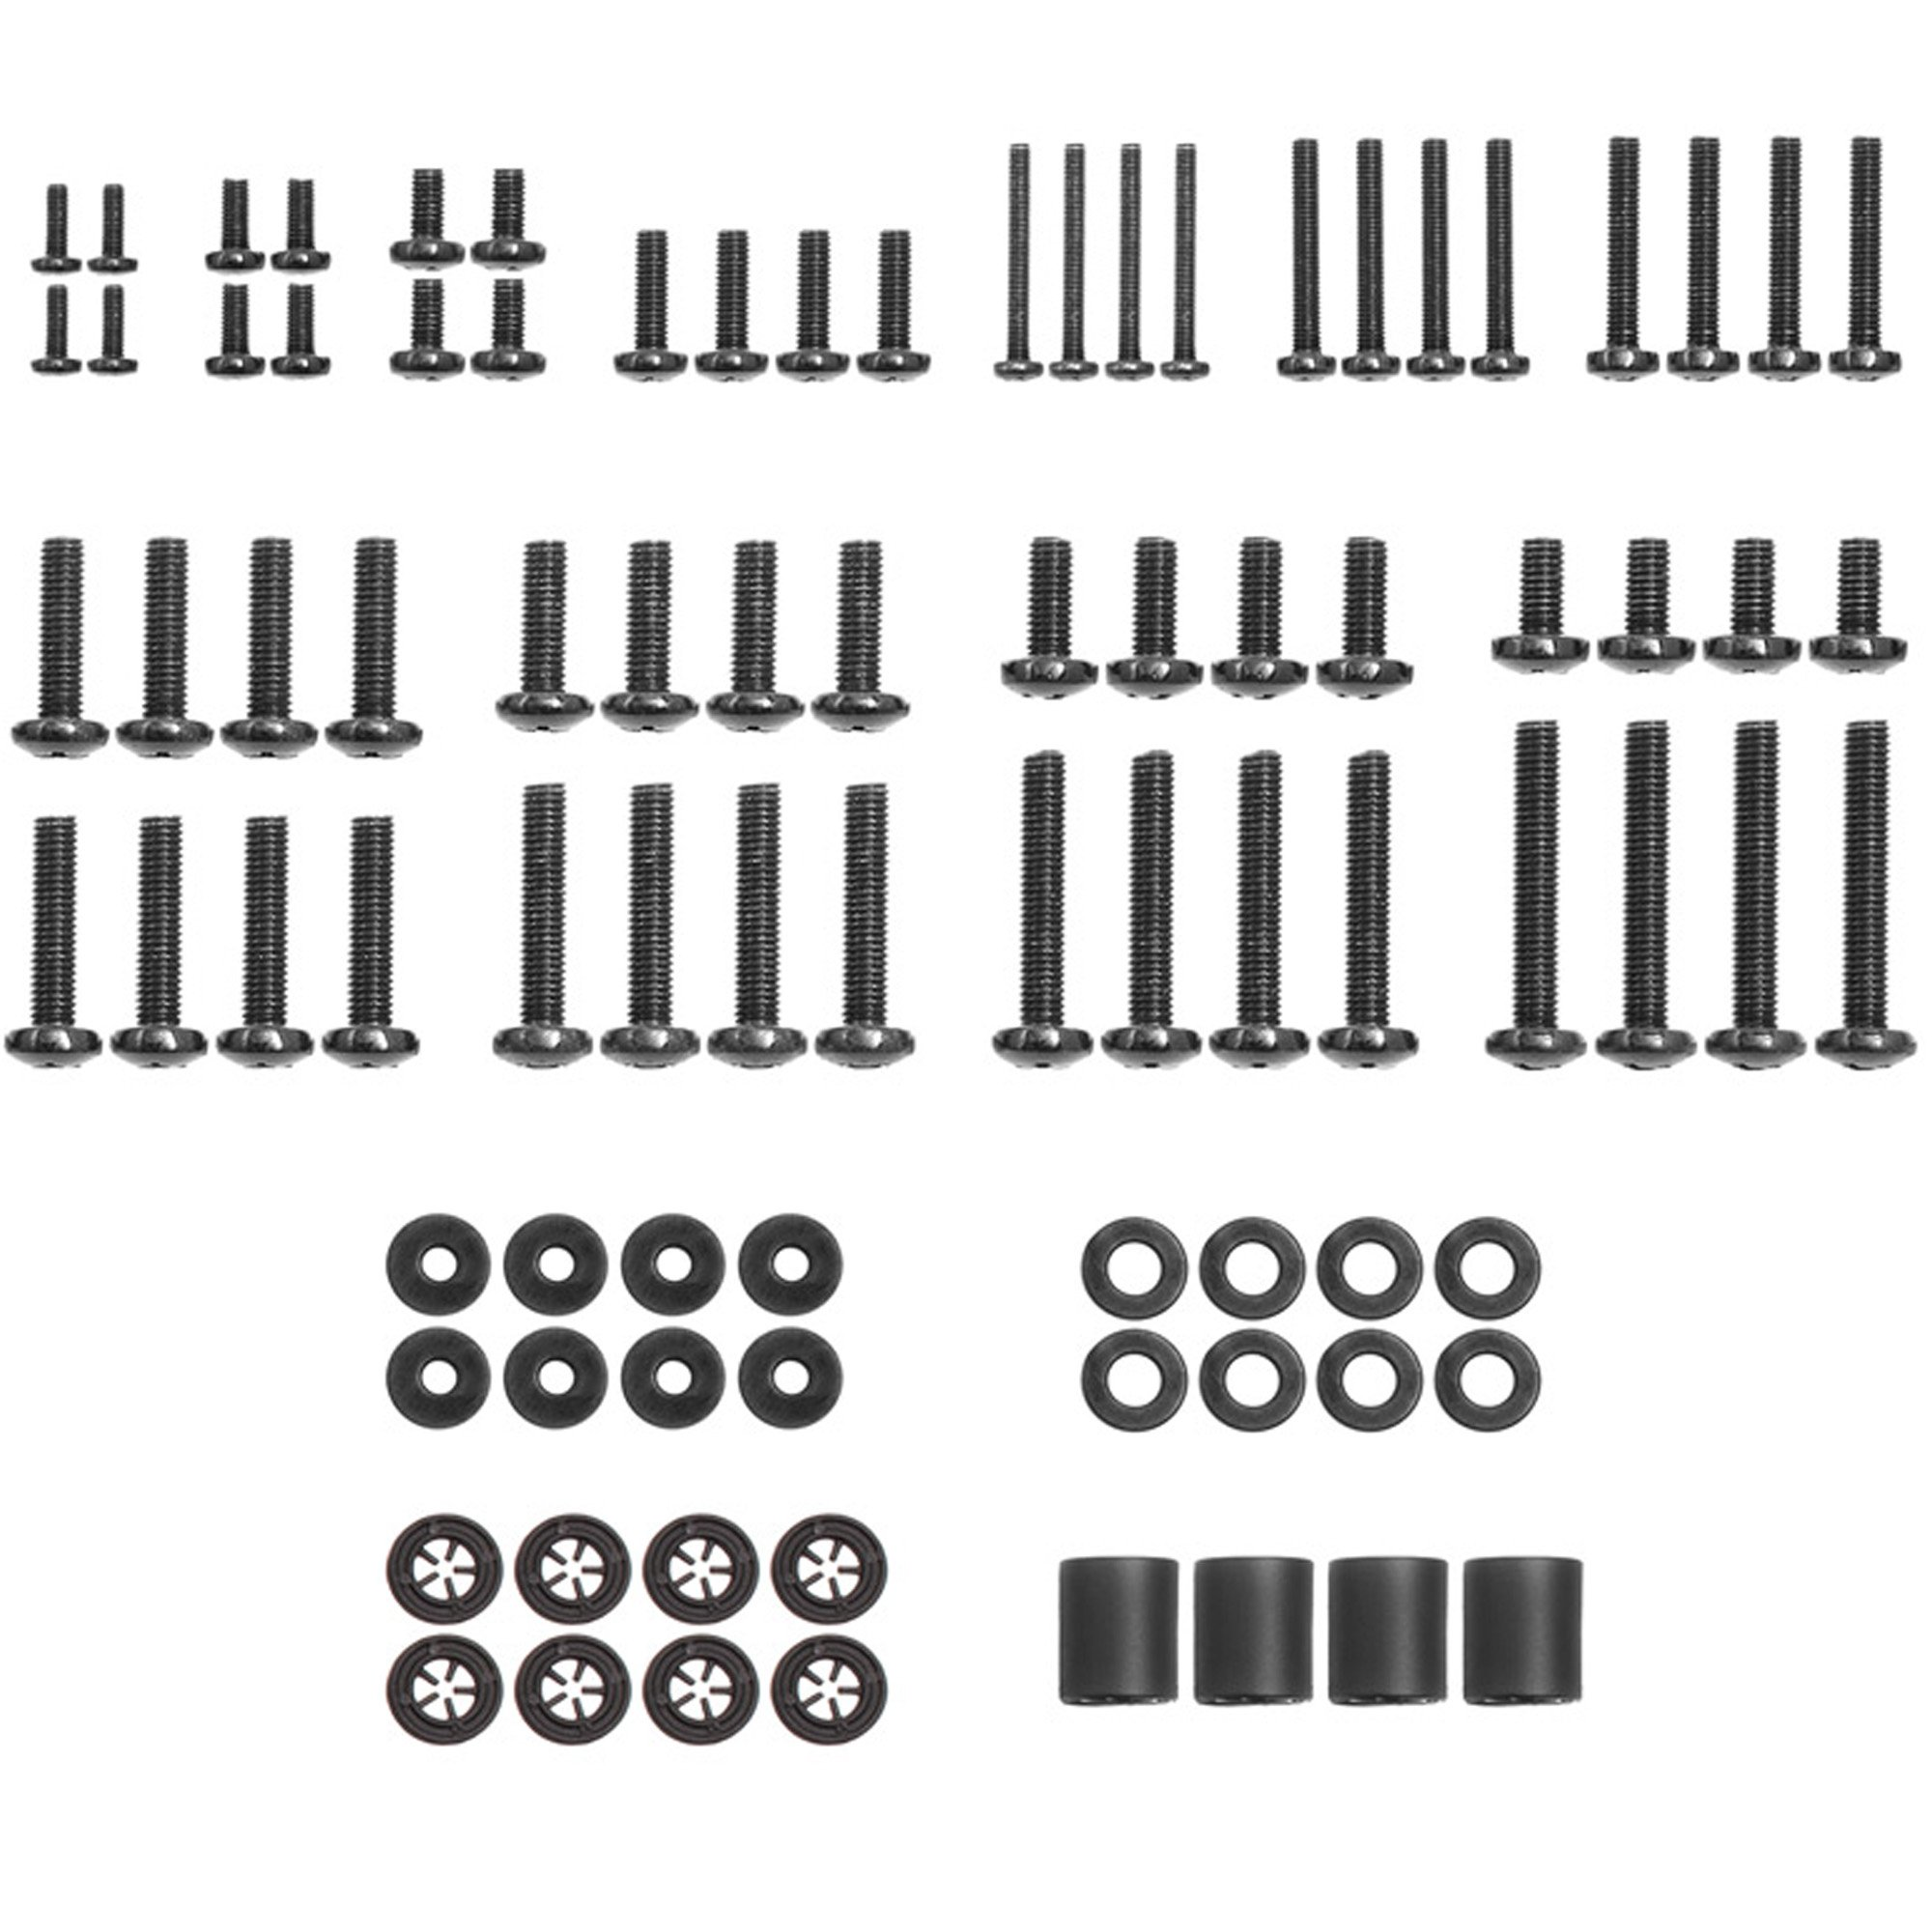 Universal TV Mounting Hardware Pack Fits All TVs Includes M4, M5, M6, and M8 TV Screws and Spacer Assortment for Mounting Virtually All TV's up to 80'' - ECHOGEAR